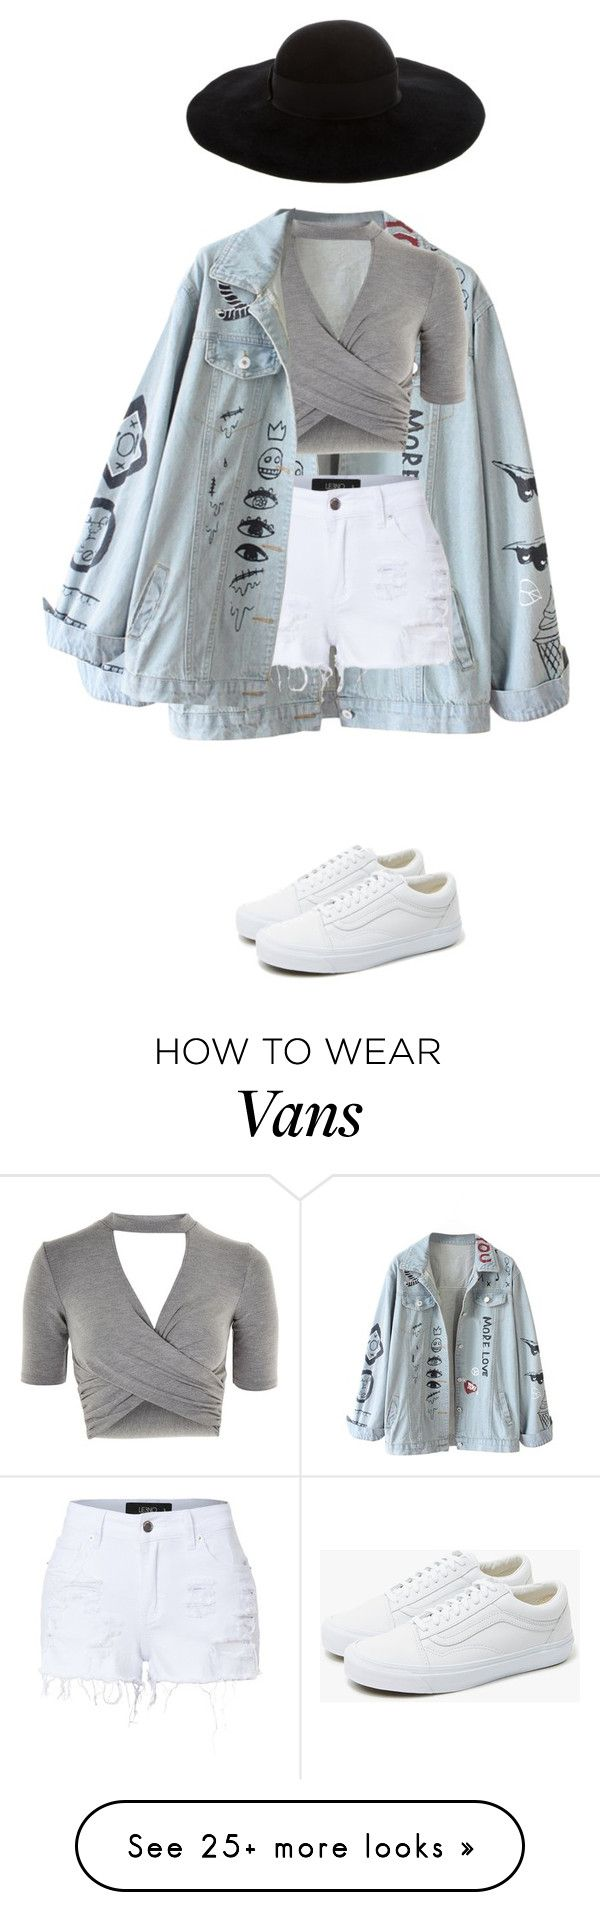 """""""mannequinxo x rise + shine .. behati"""" by xoflawlessmannequinxo on Polyvore featuring Topshop, LE3NO, Vans and Eugenia Kim"""